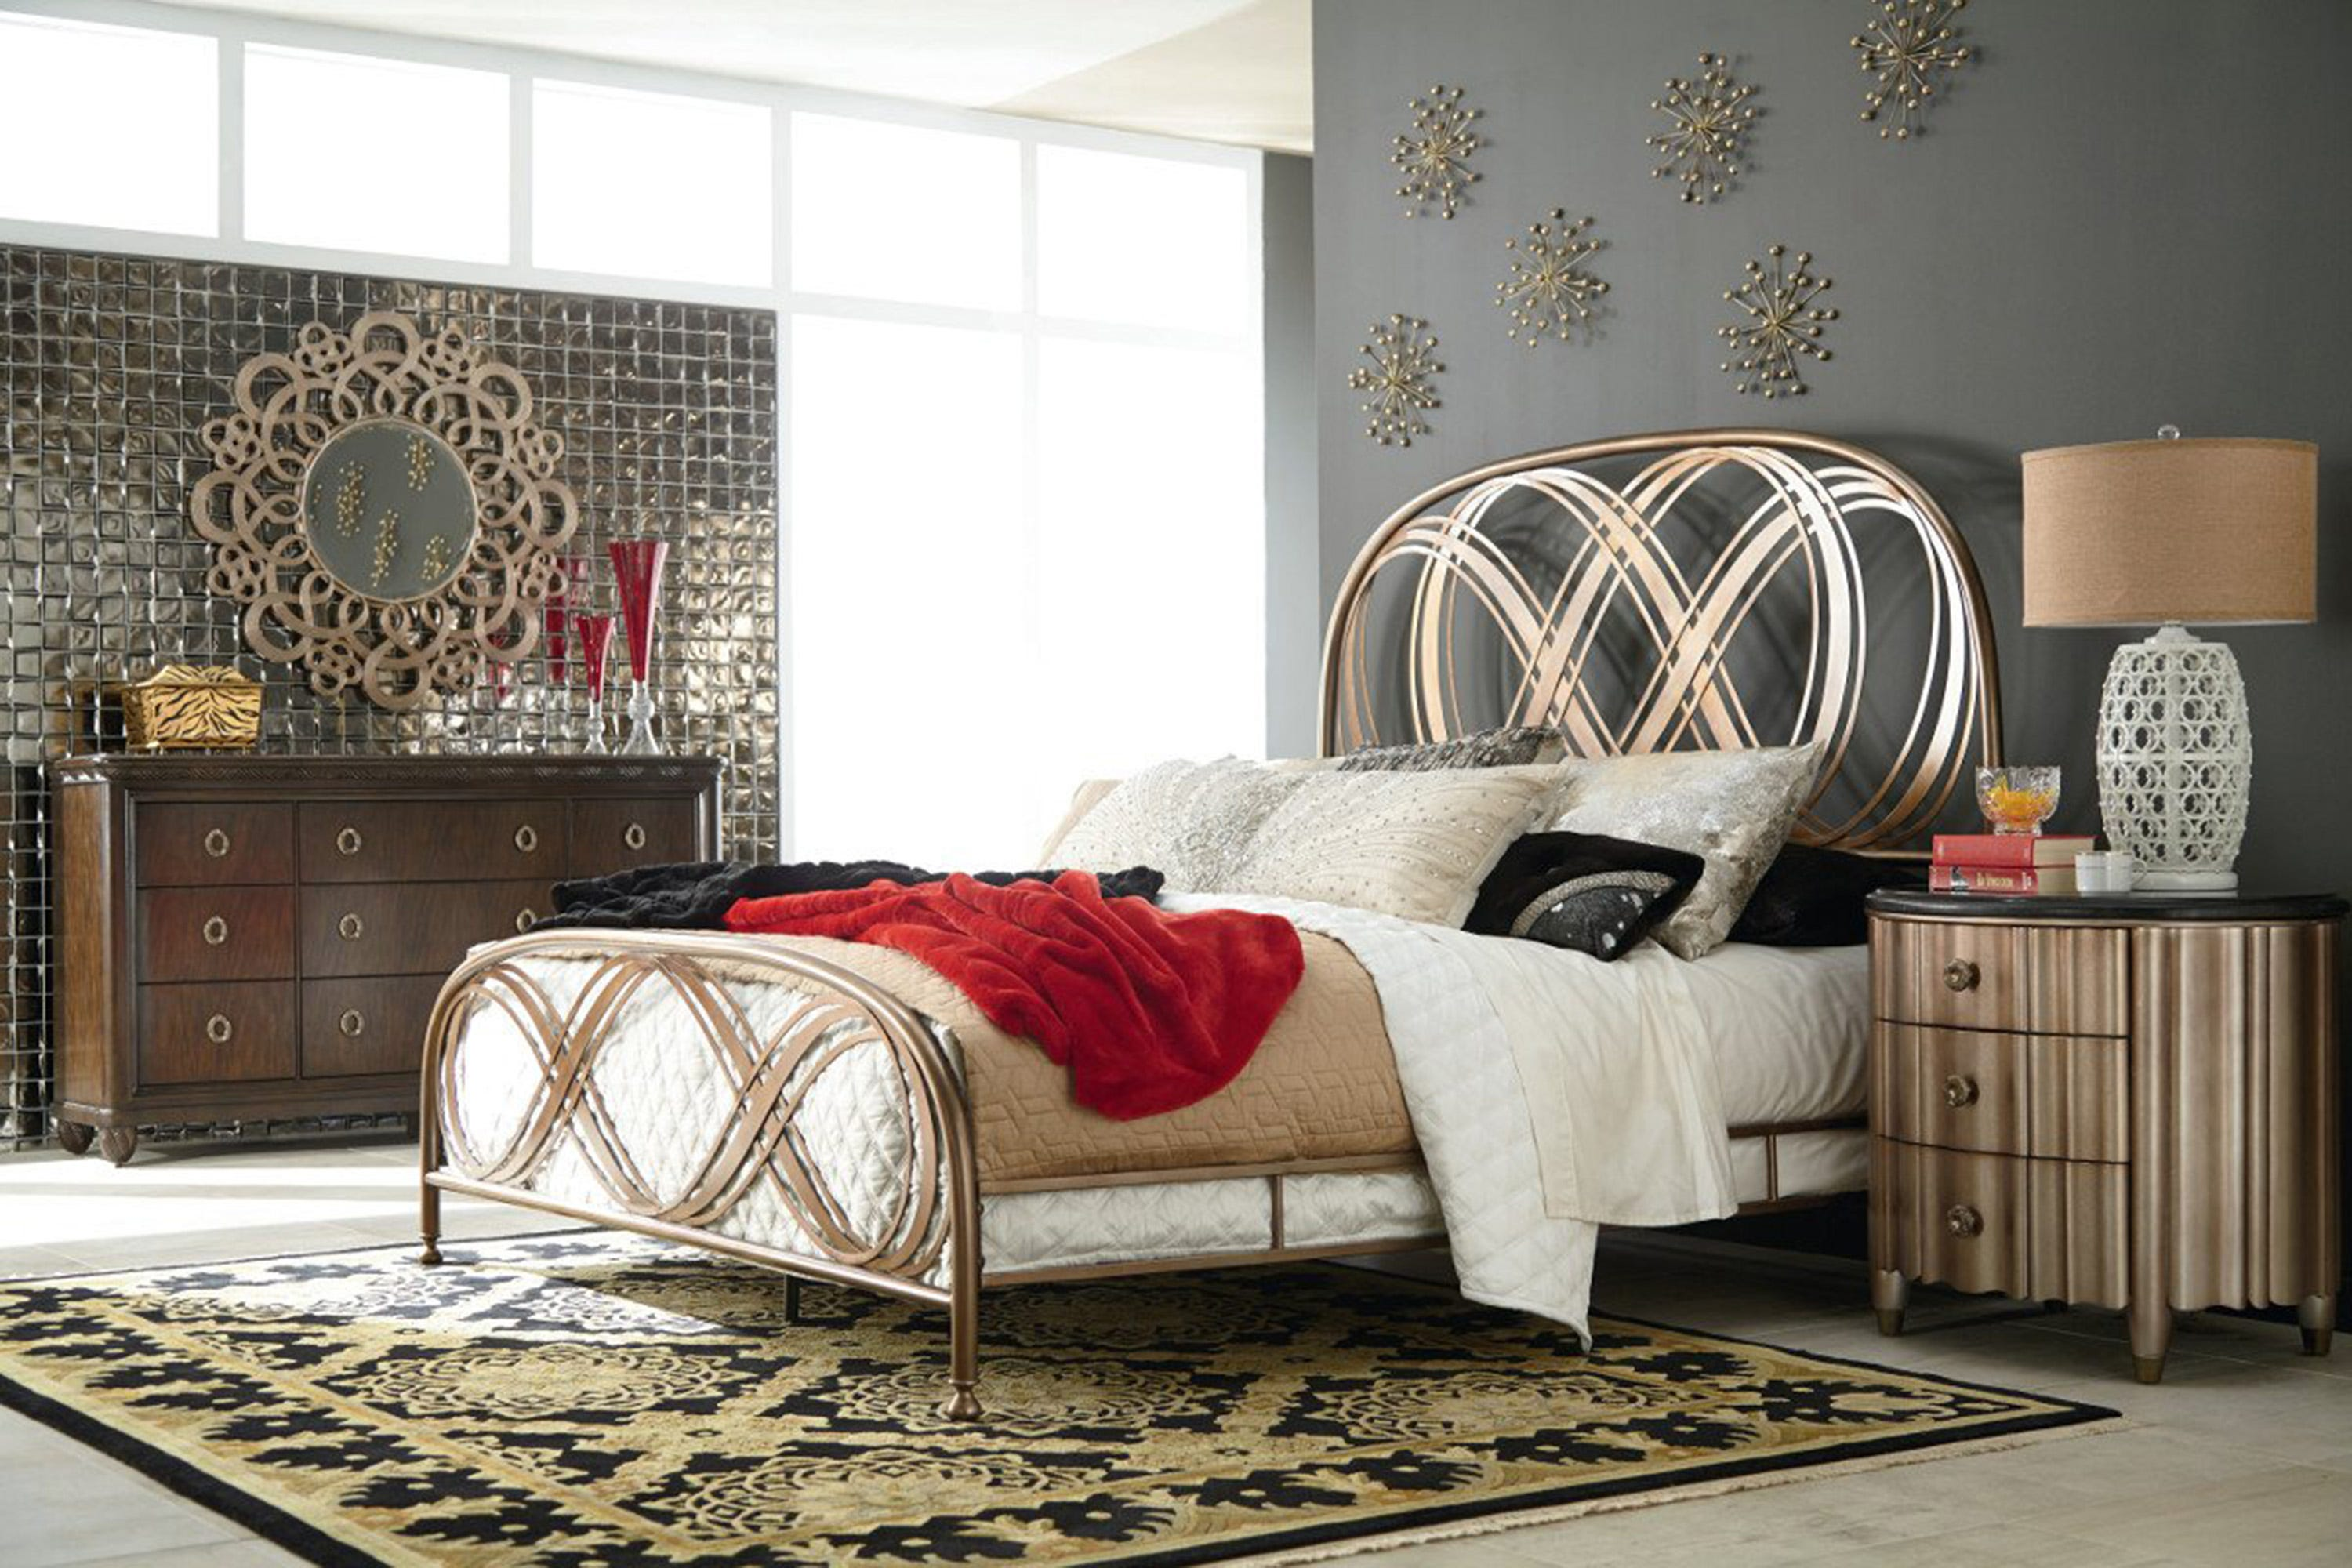 The basic iron or brass bed design has been reshaped it into exciting new forms. New finishes different metals and manufacturing techniques make them one ... & Metal beds take on a whole new vibe